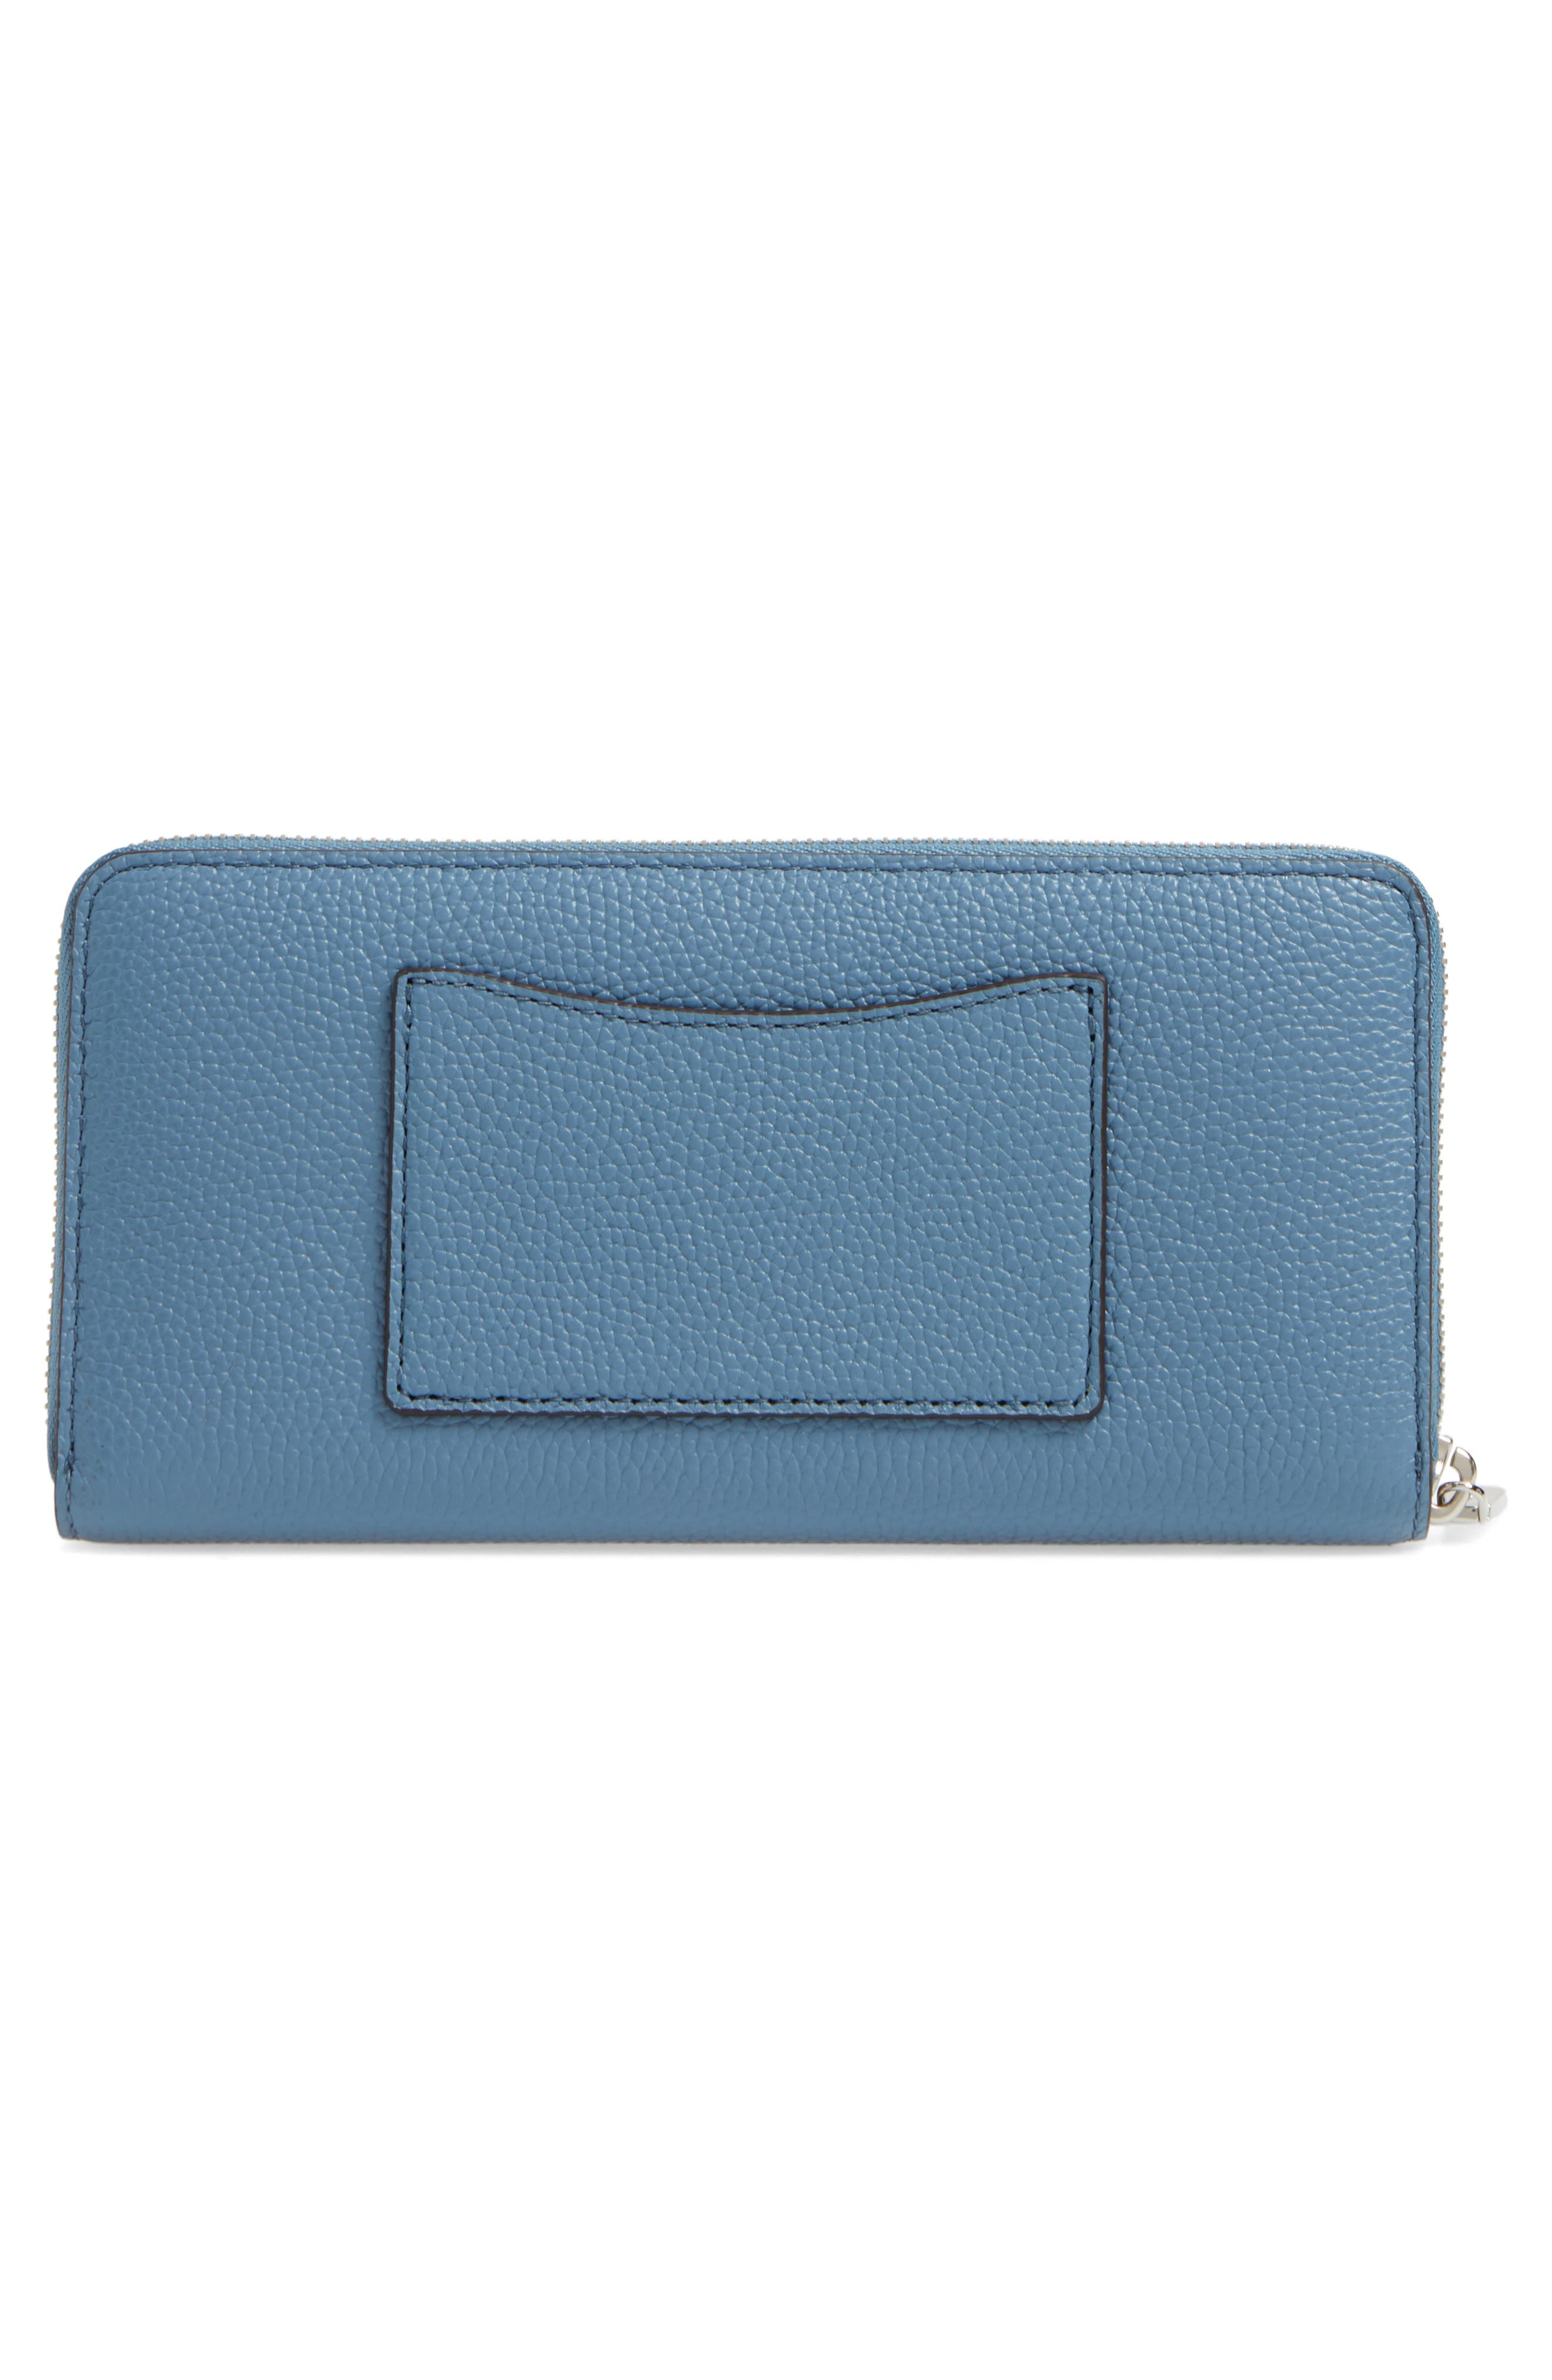 Mercer Leather Continental Wallet,                             Alternate thumbnail 11, color,